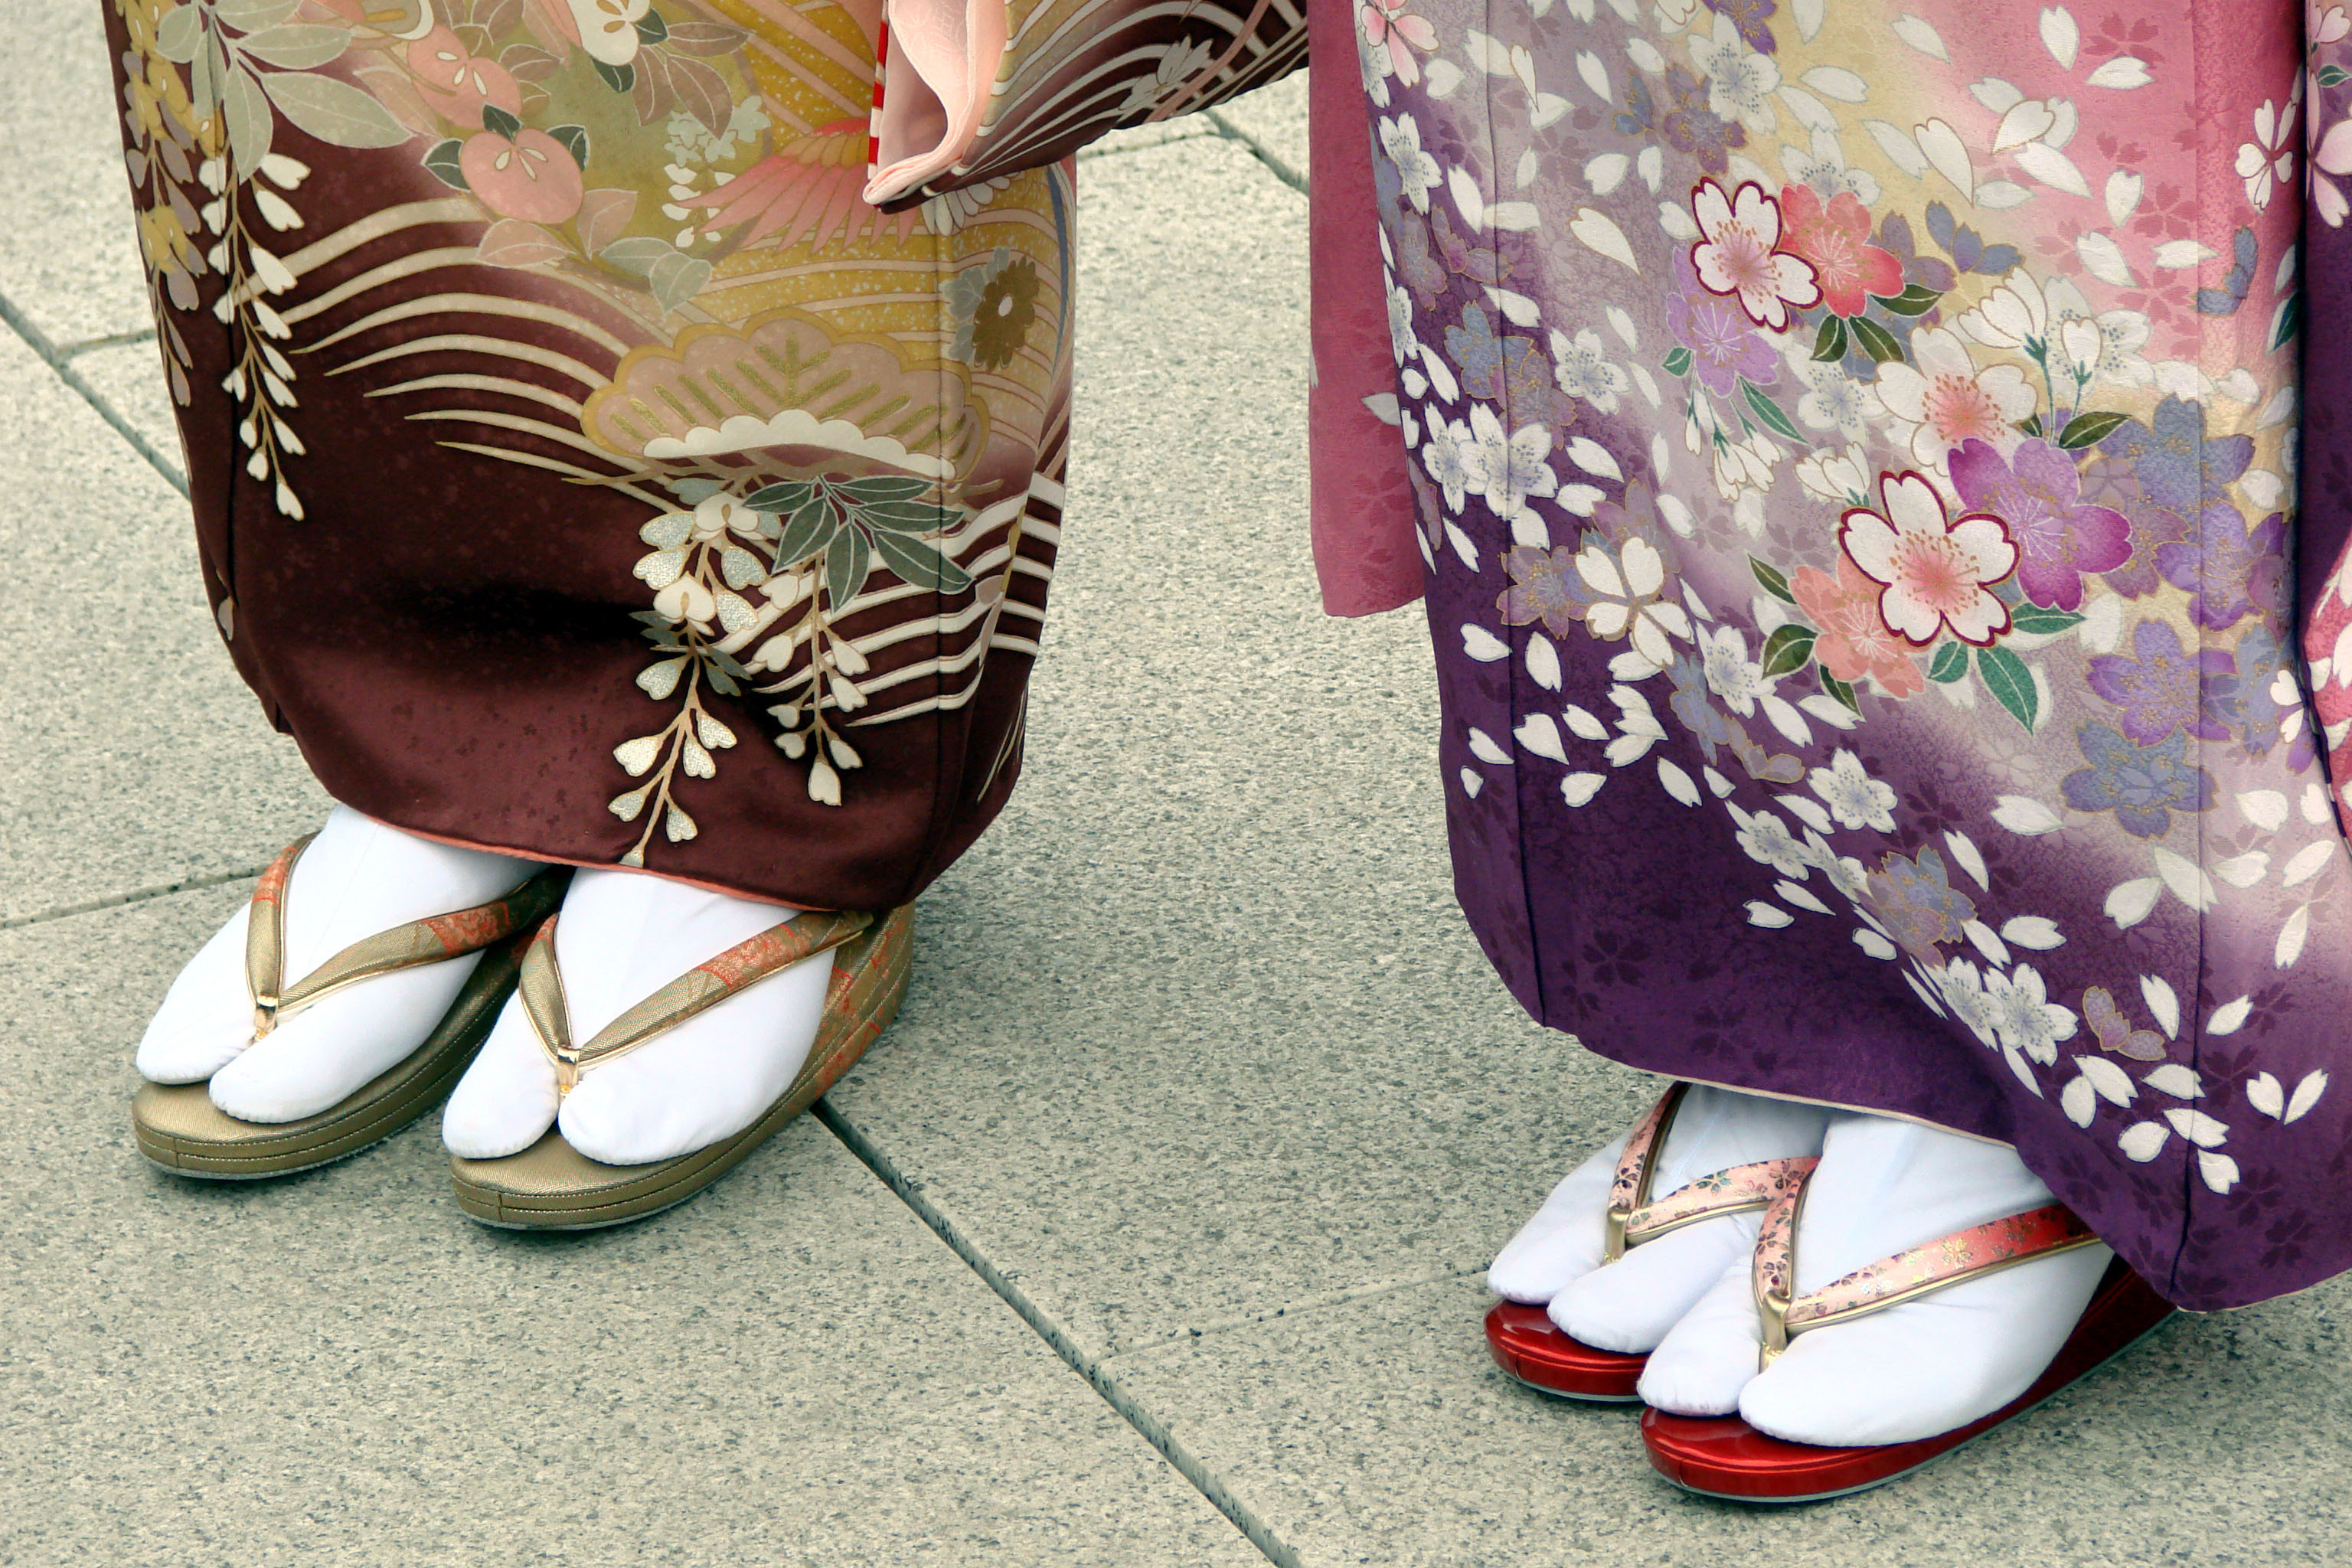 Japanese women in Tabi and Sori.